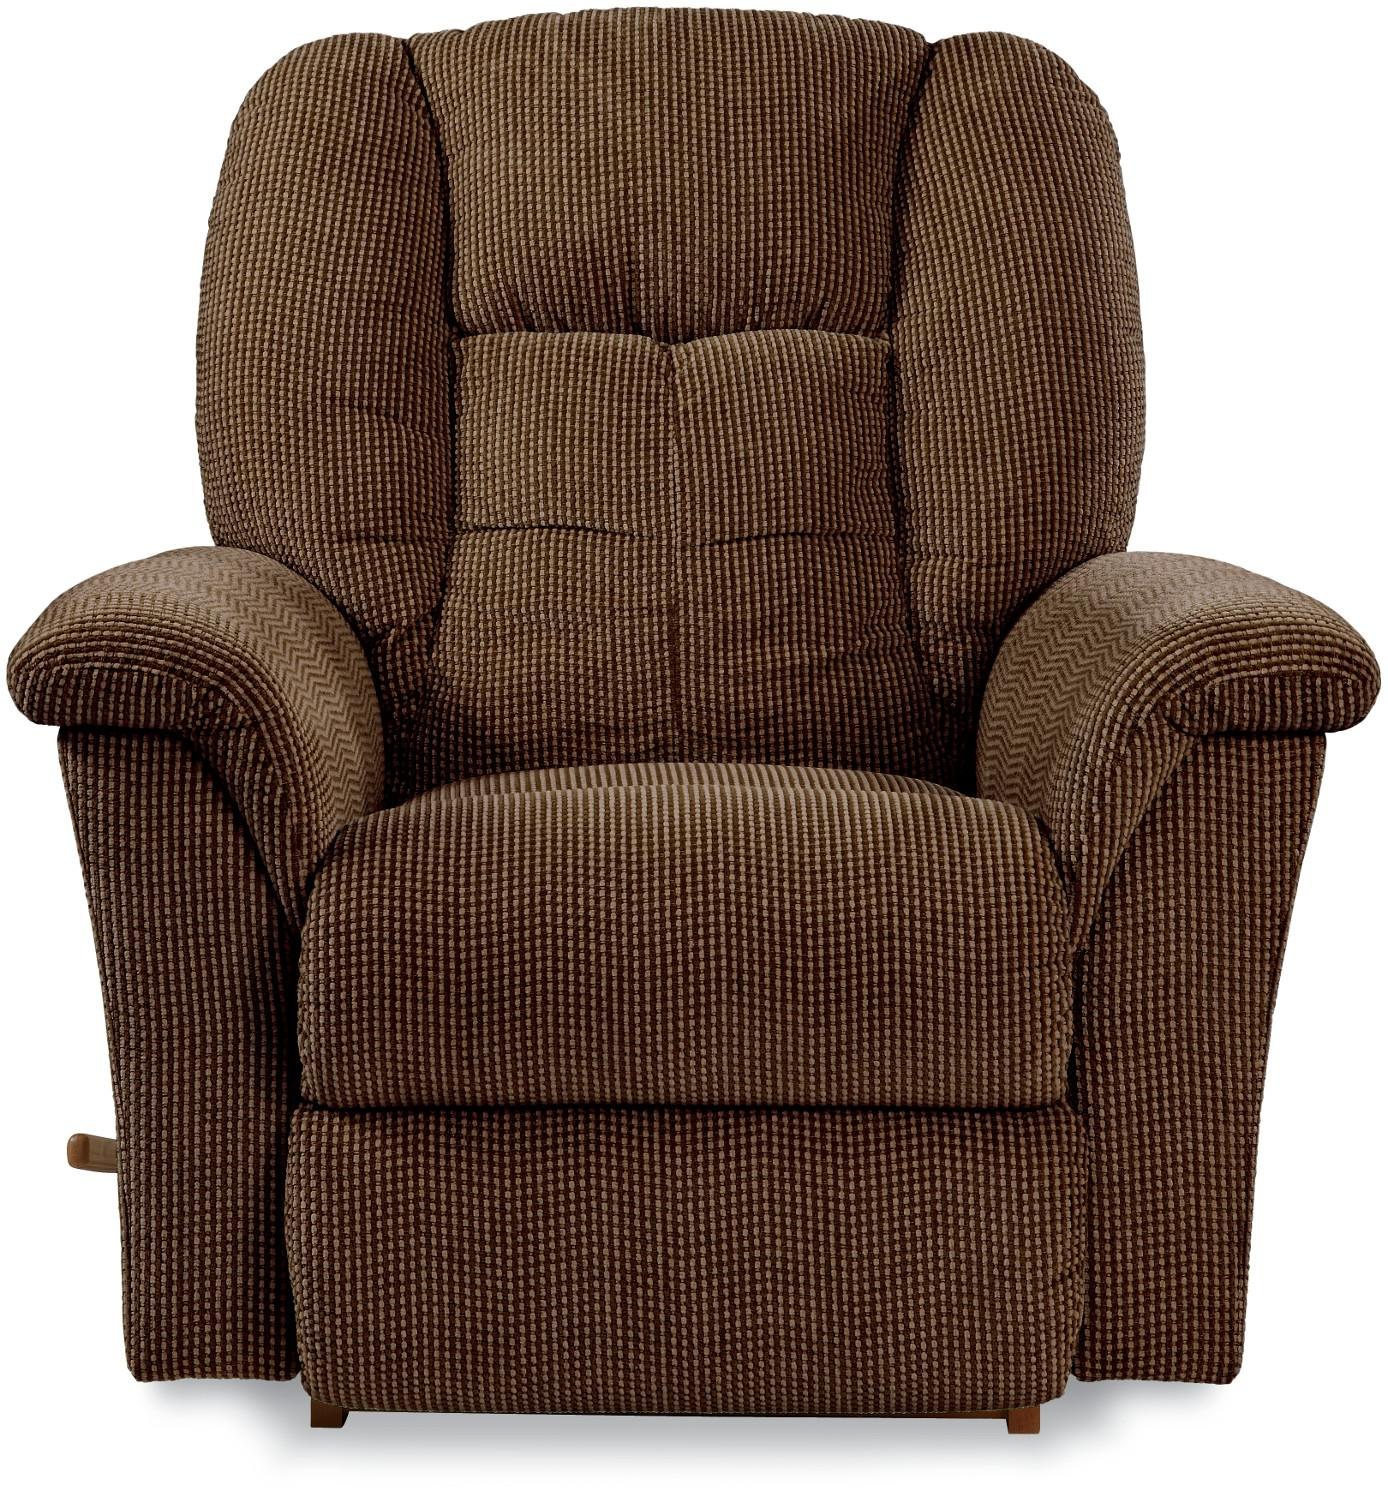 Reclina rocker recliner by la z boy wolf and gardiner for Bulldog pad over chaise rocker recliner